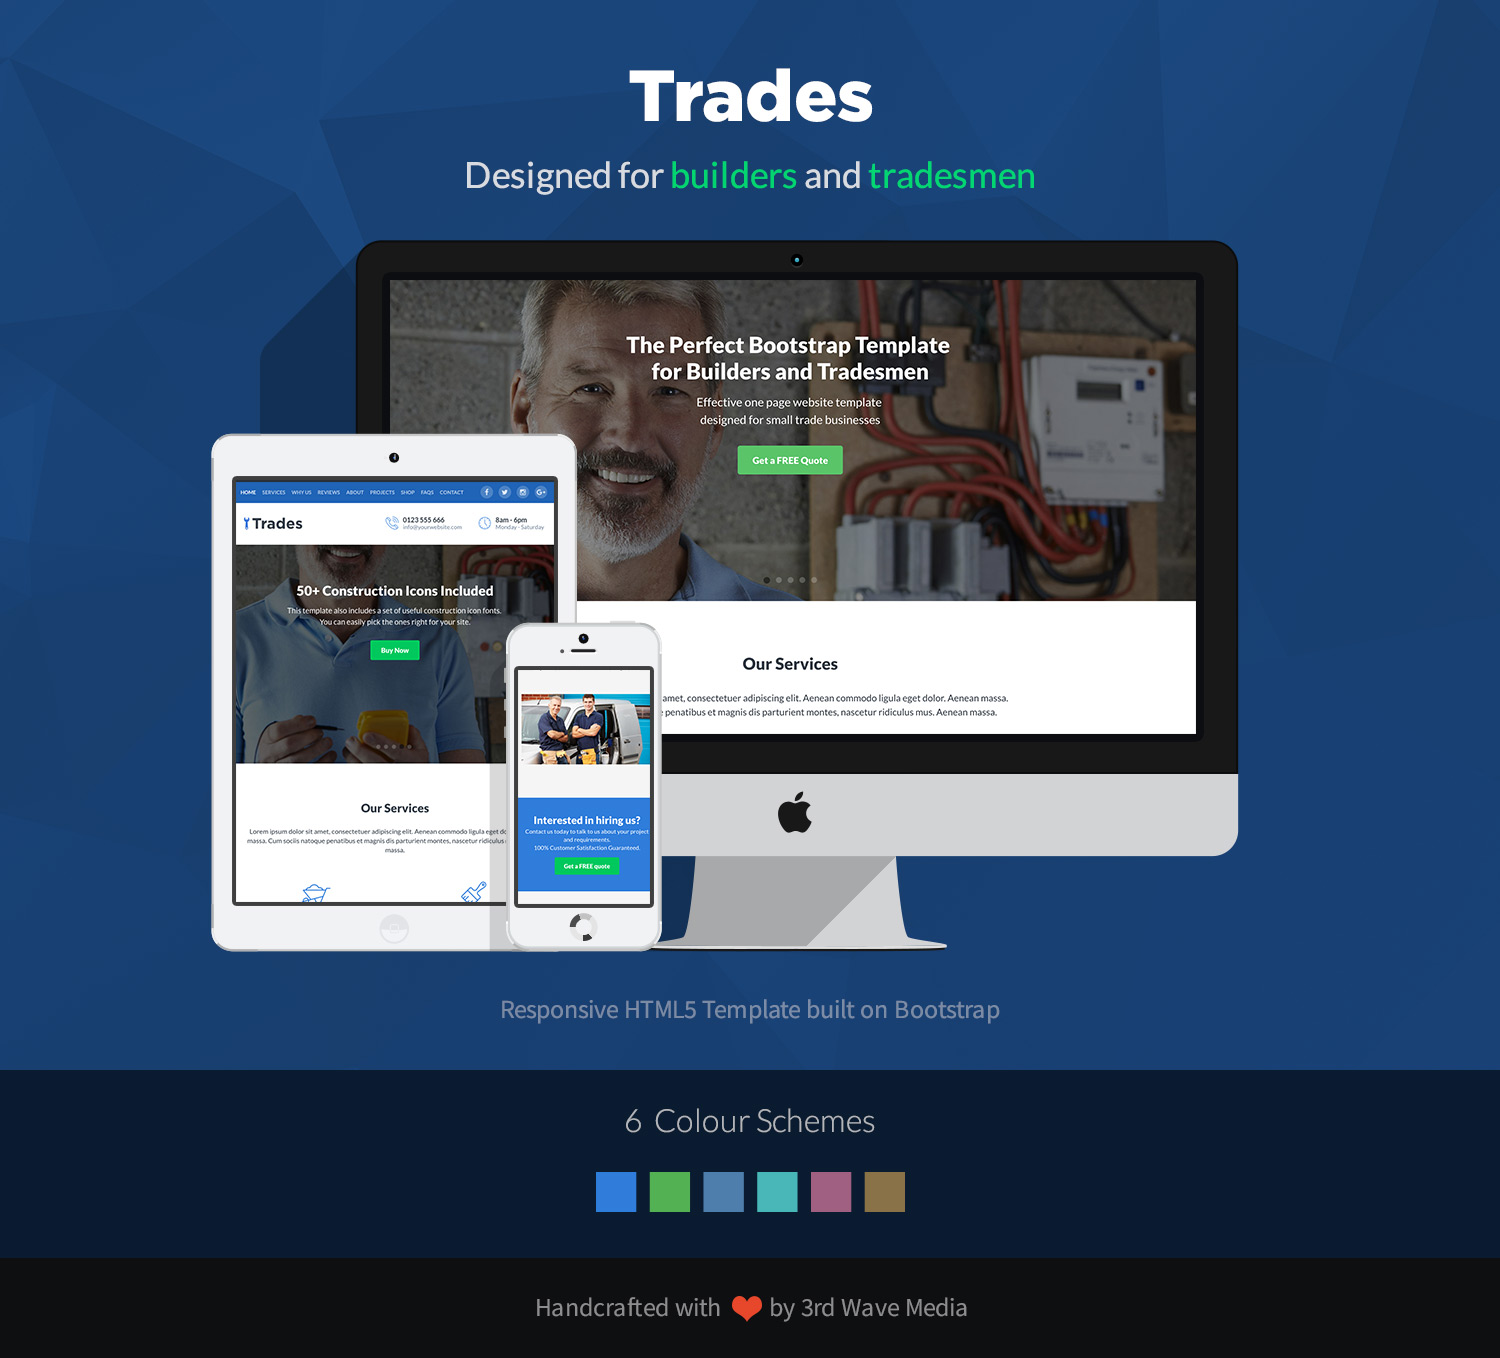 Trades - For Builders and Tradesmen